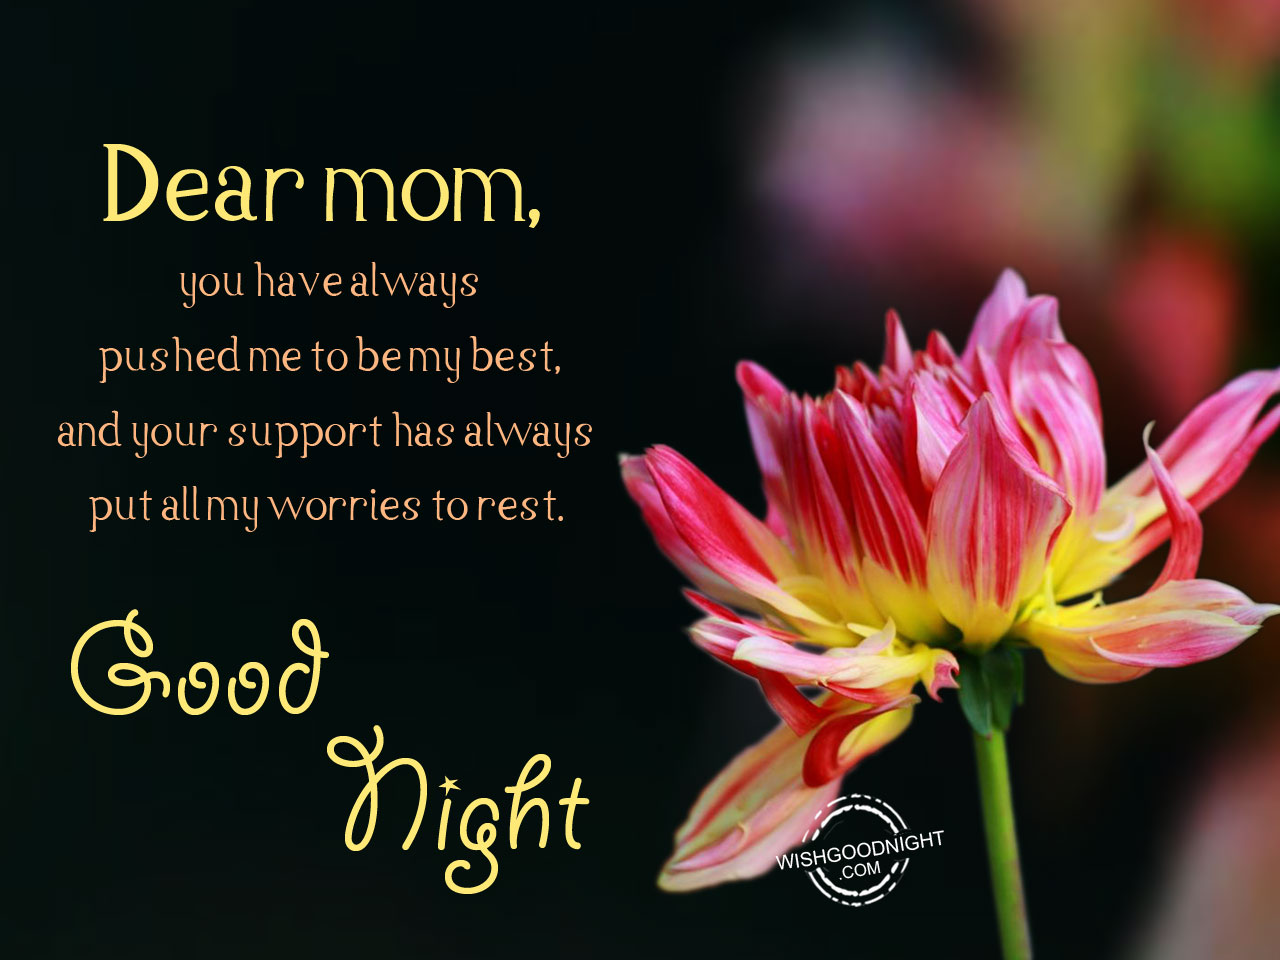 One night with mommie - 2 9